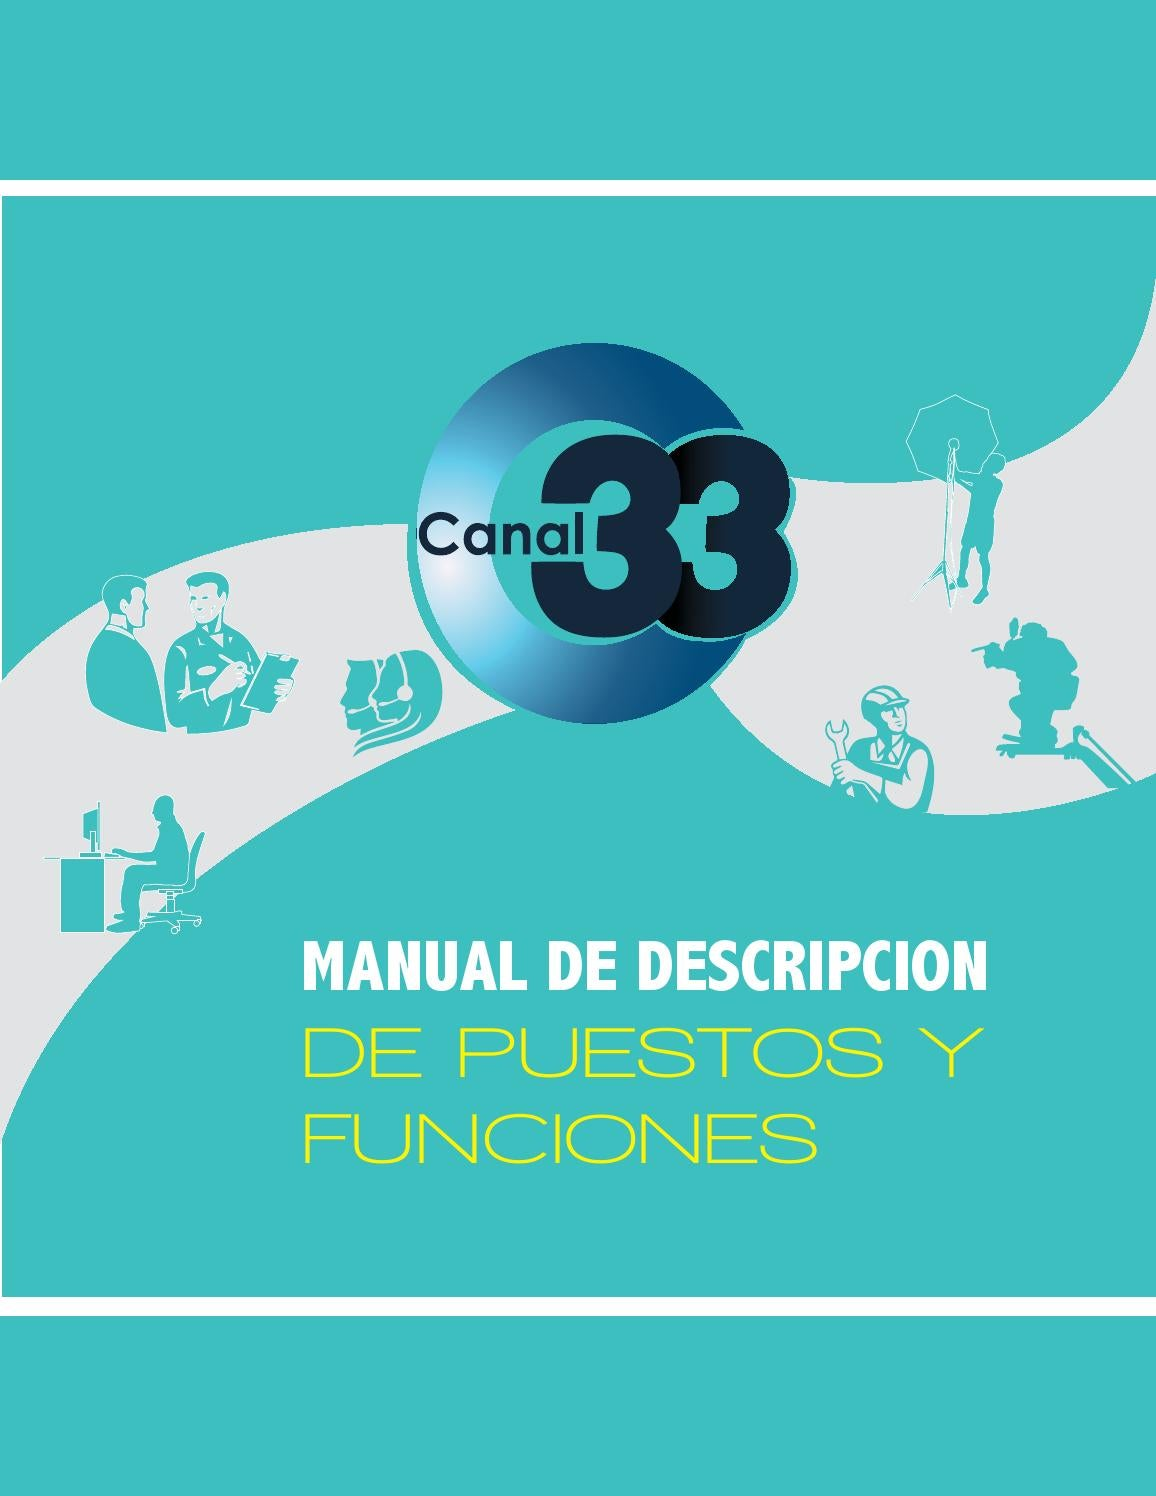 Manual de puestos-Canal 33 by KREATIVE KD - issuu